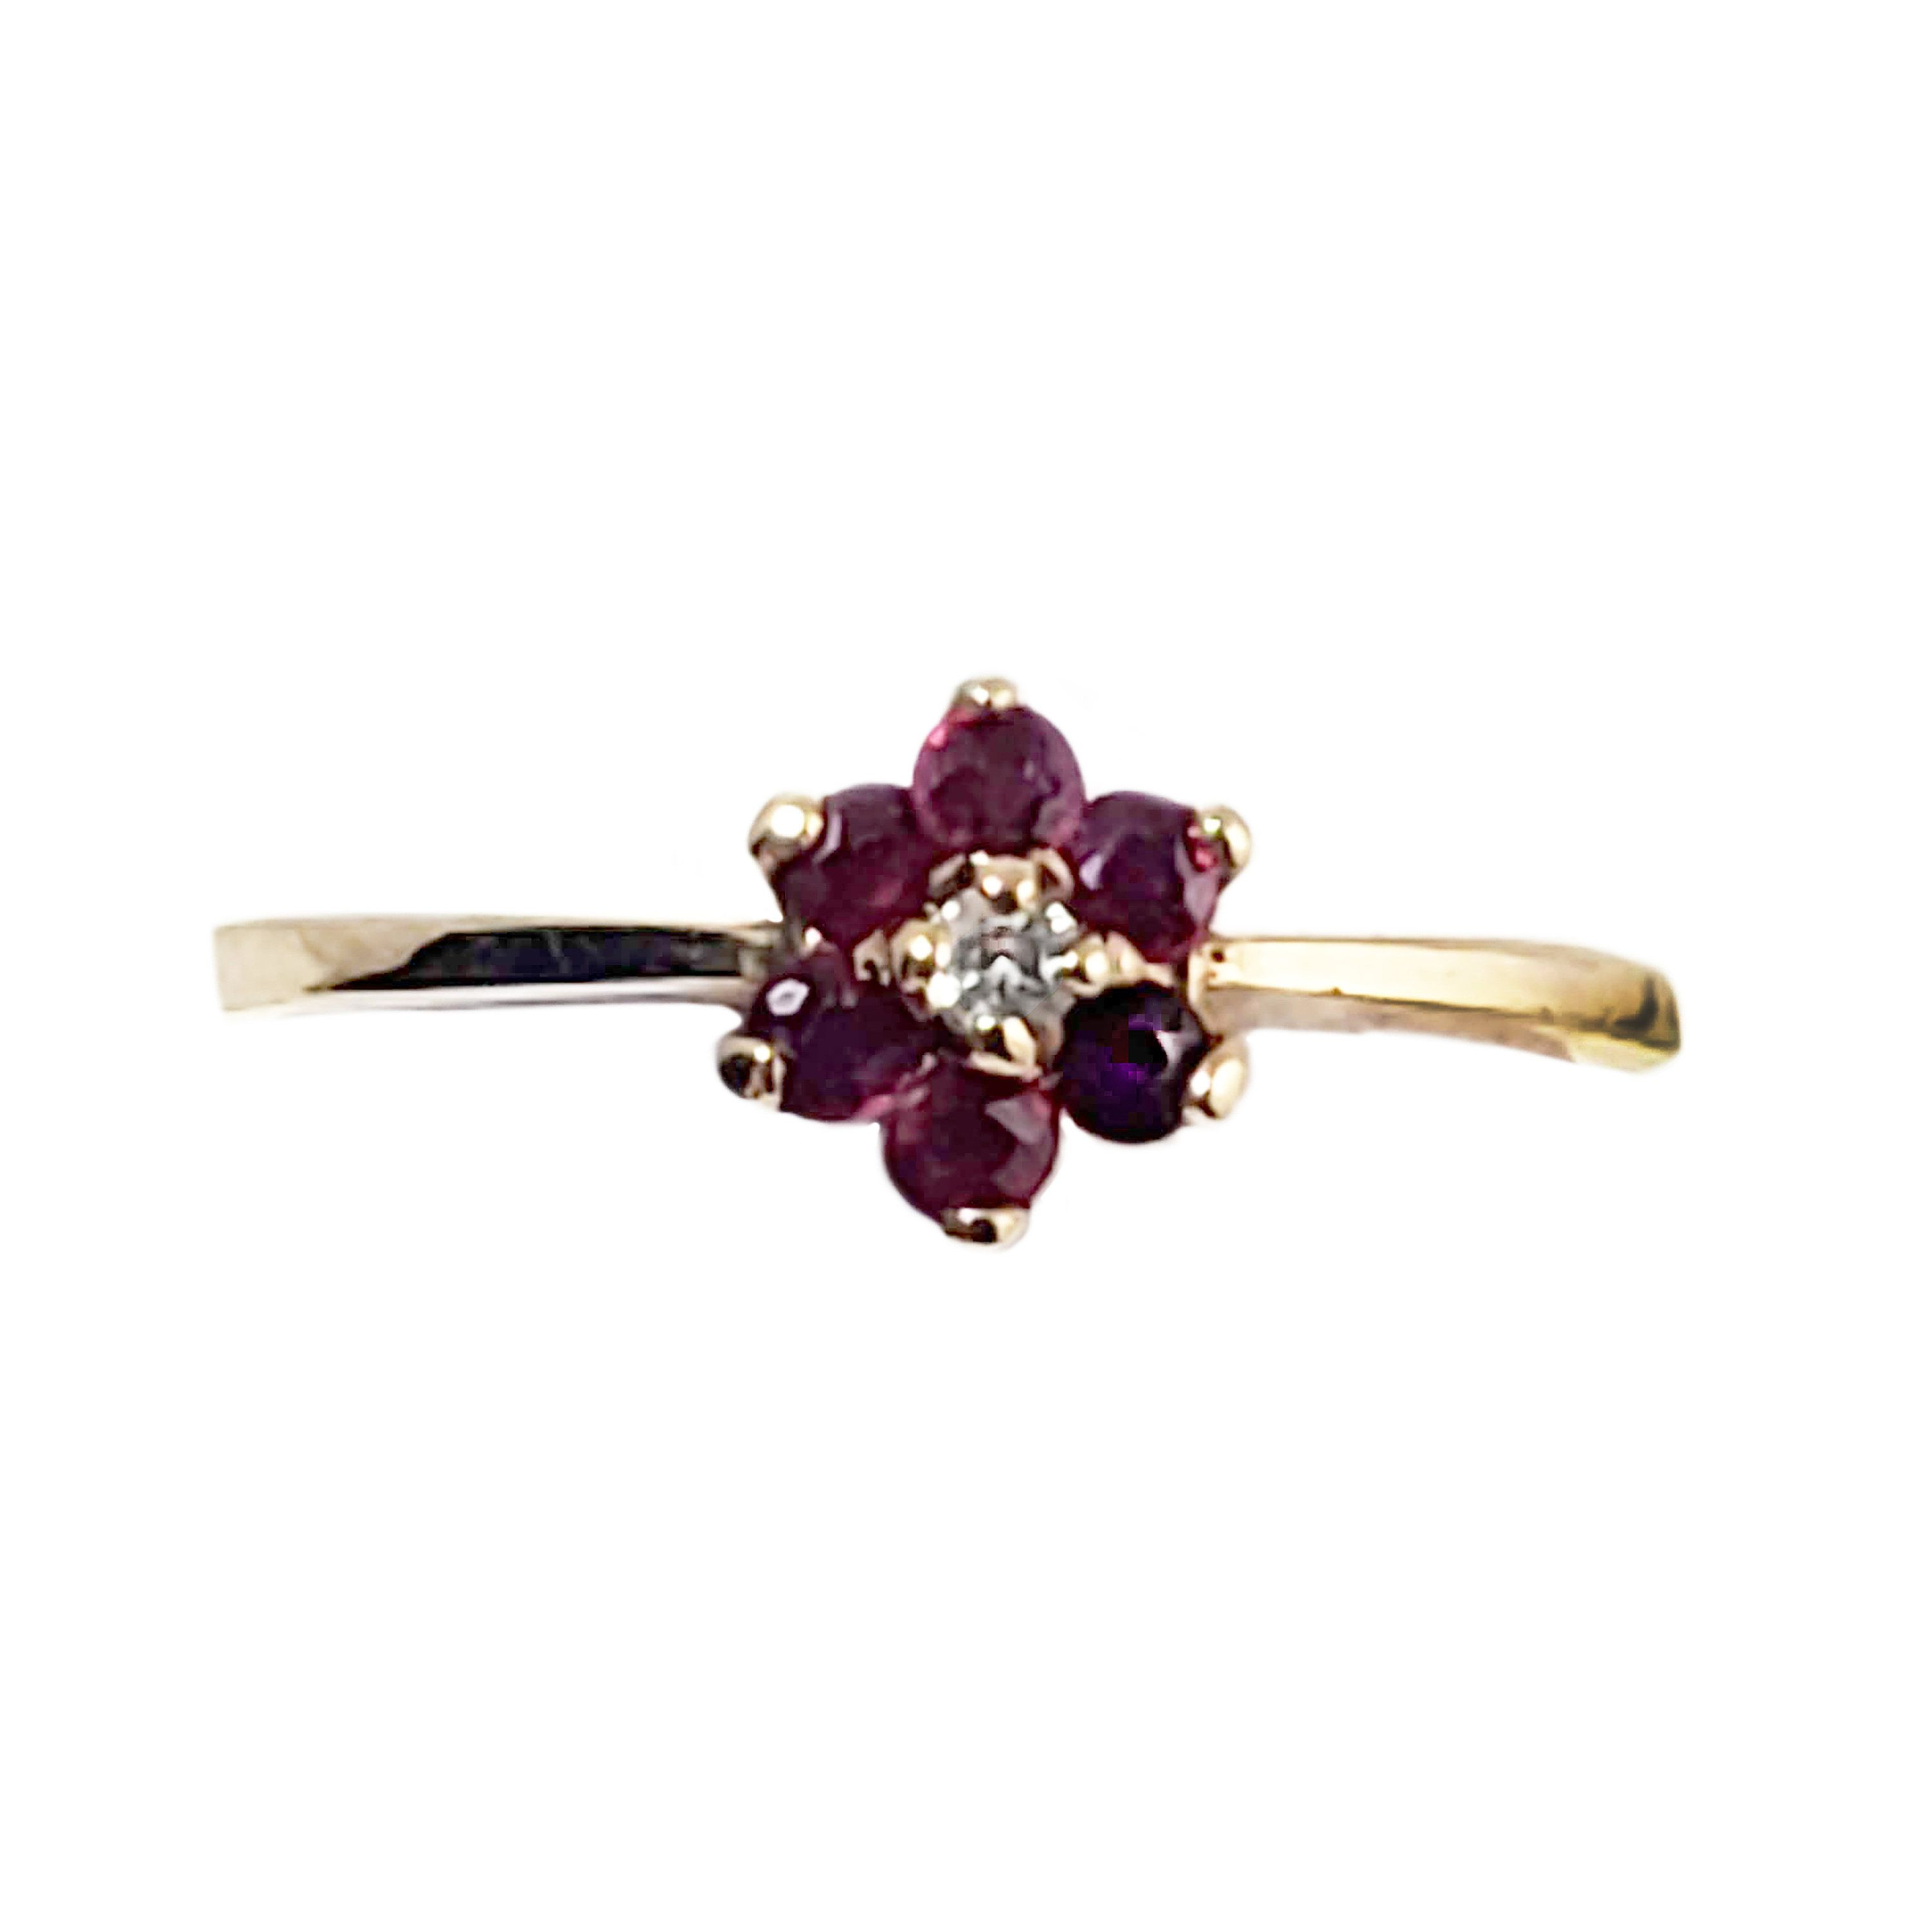 Vintage 10k Gold Ruby And Diamond Ring Dainty Flower Design Size 6 Ladies Silver Rings Garnet Jewelry 10k Gold